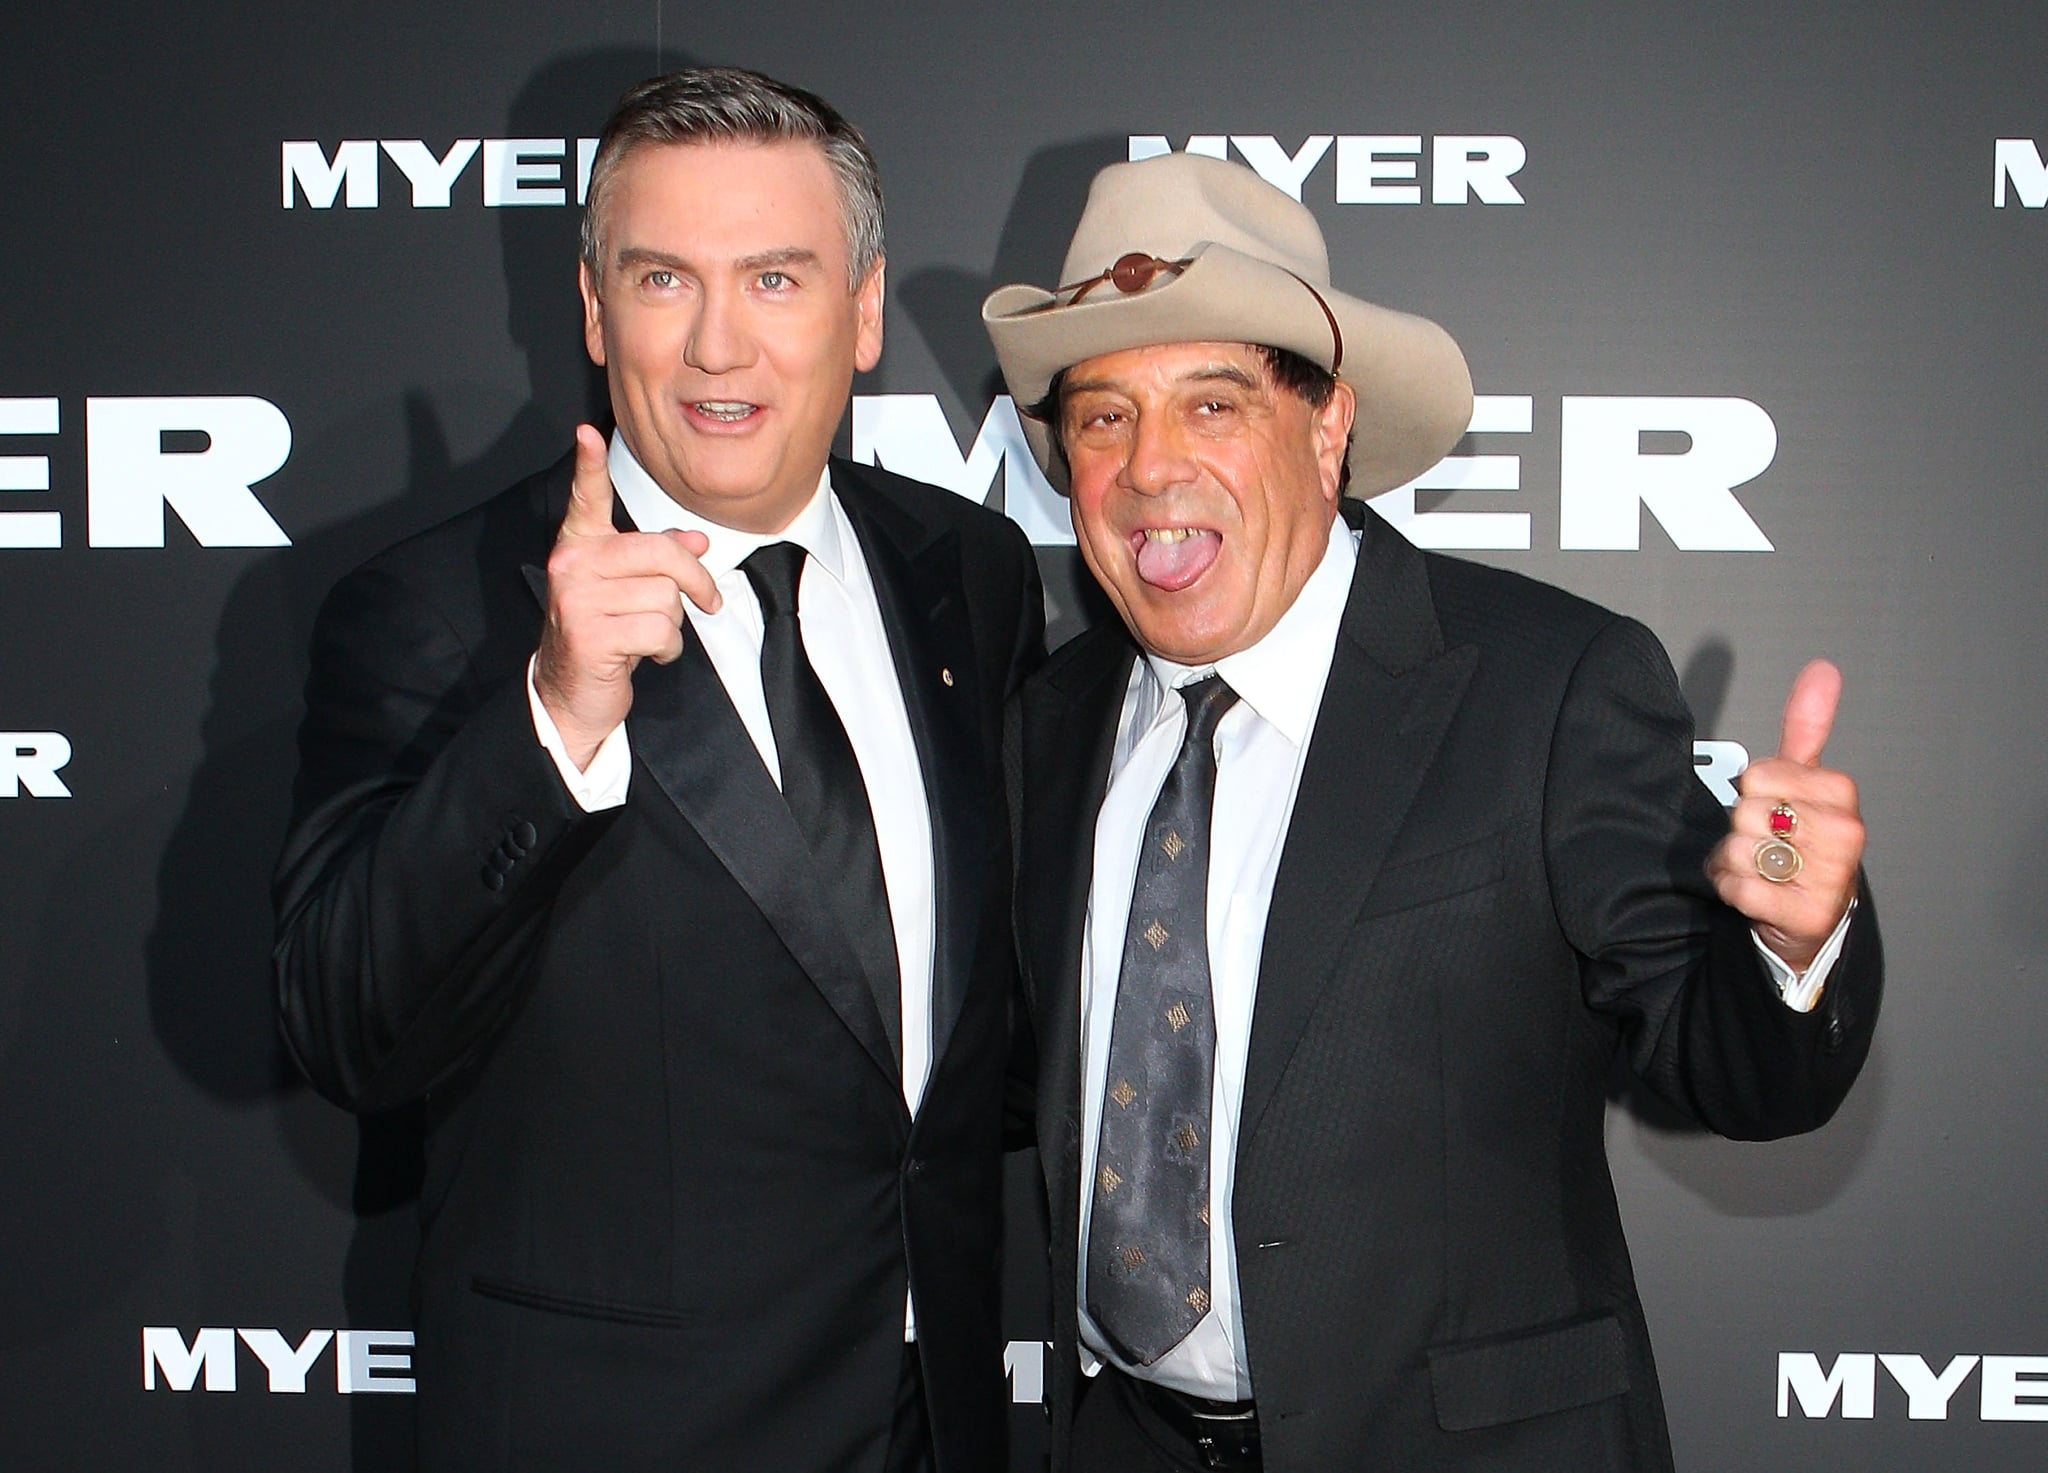 Eddie McGuire and Molly Meldrum